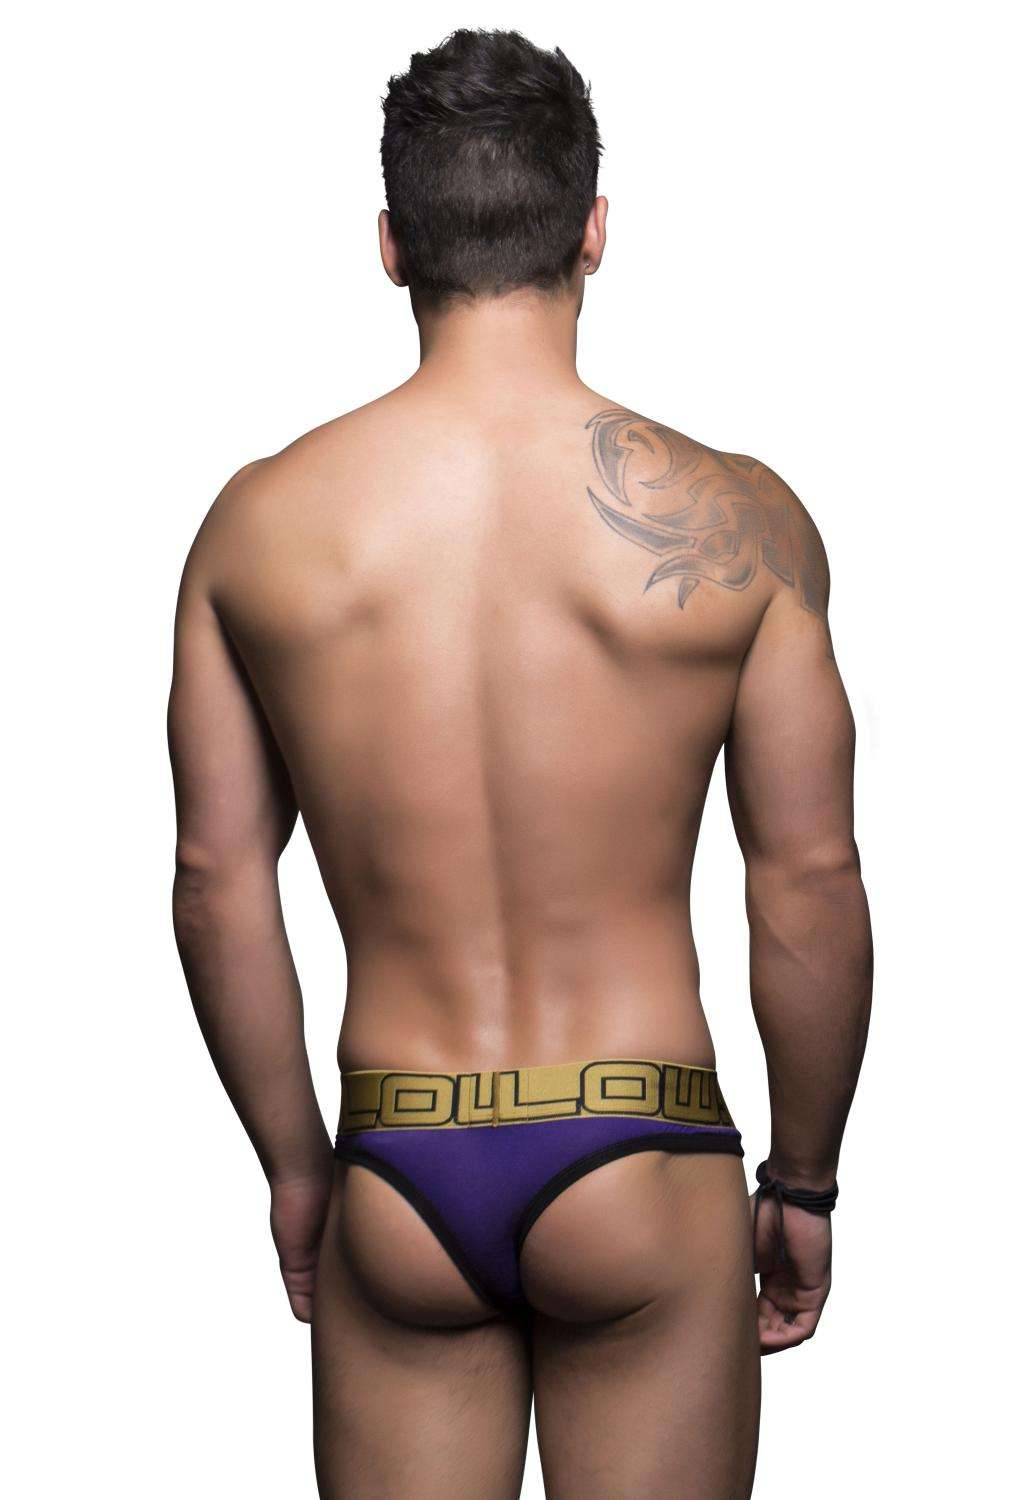 Andrew christian almost naked pride stripe brief